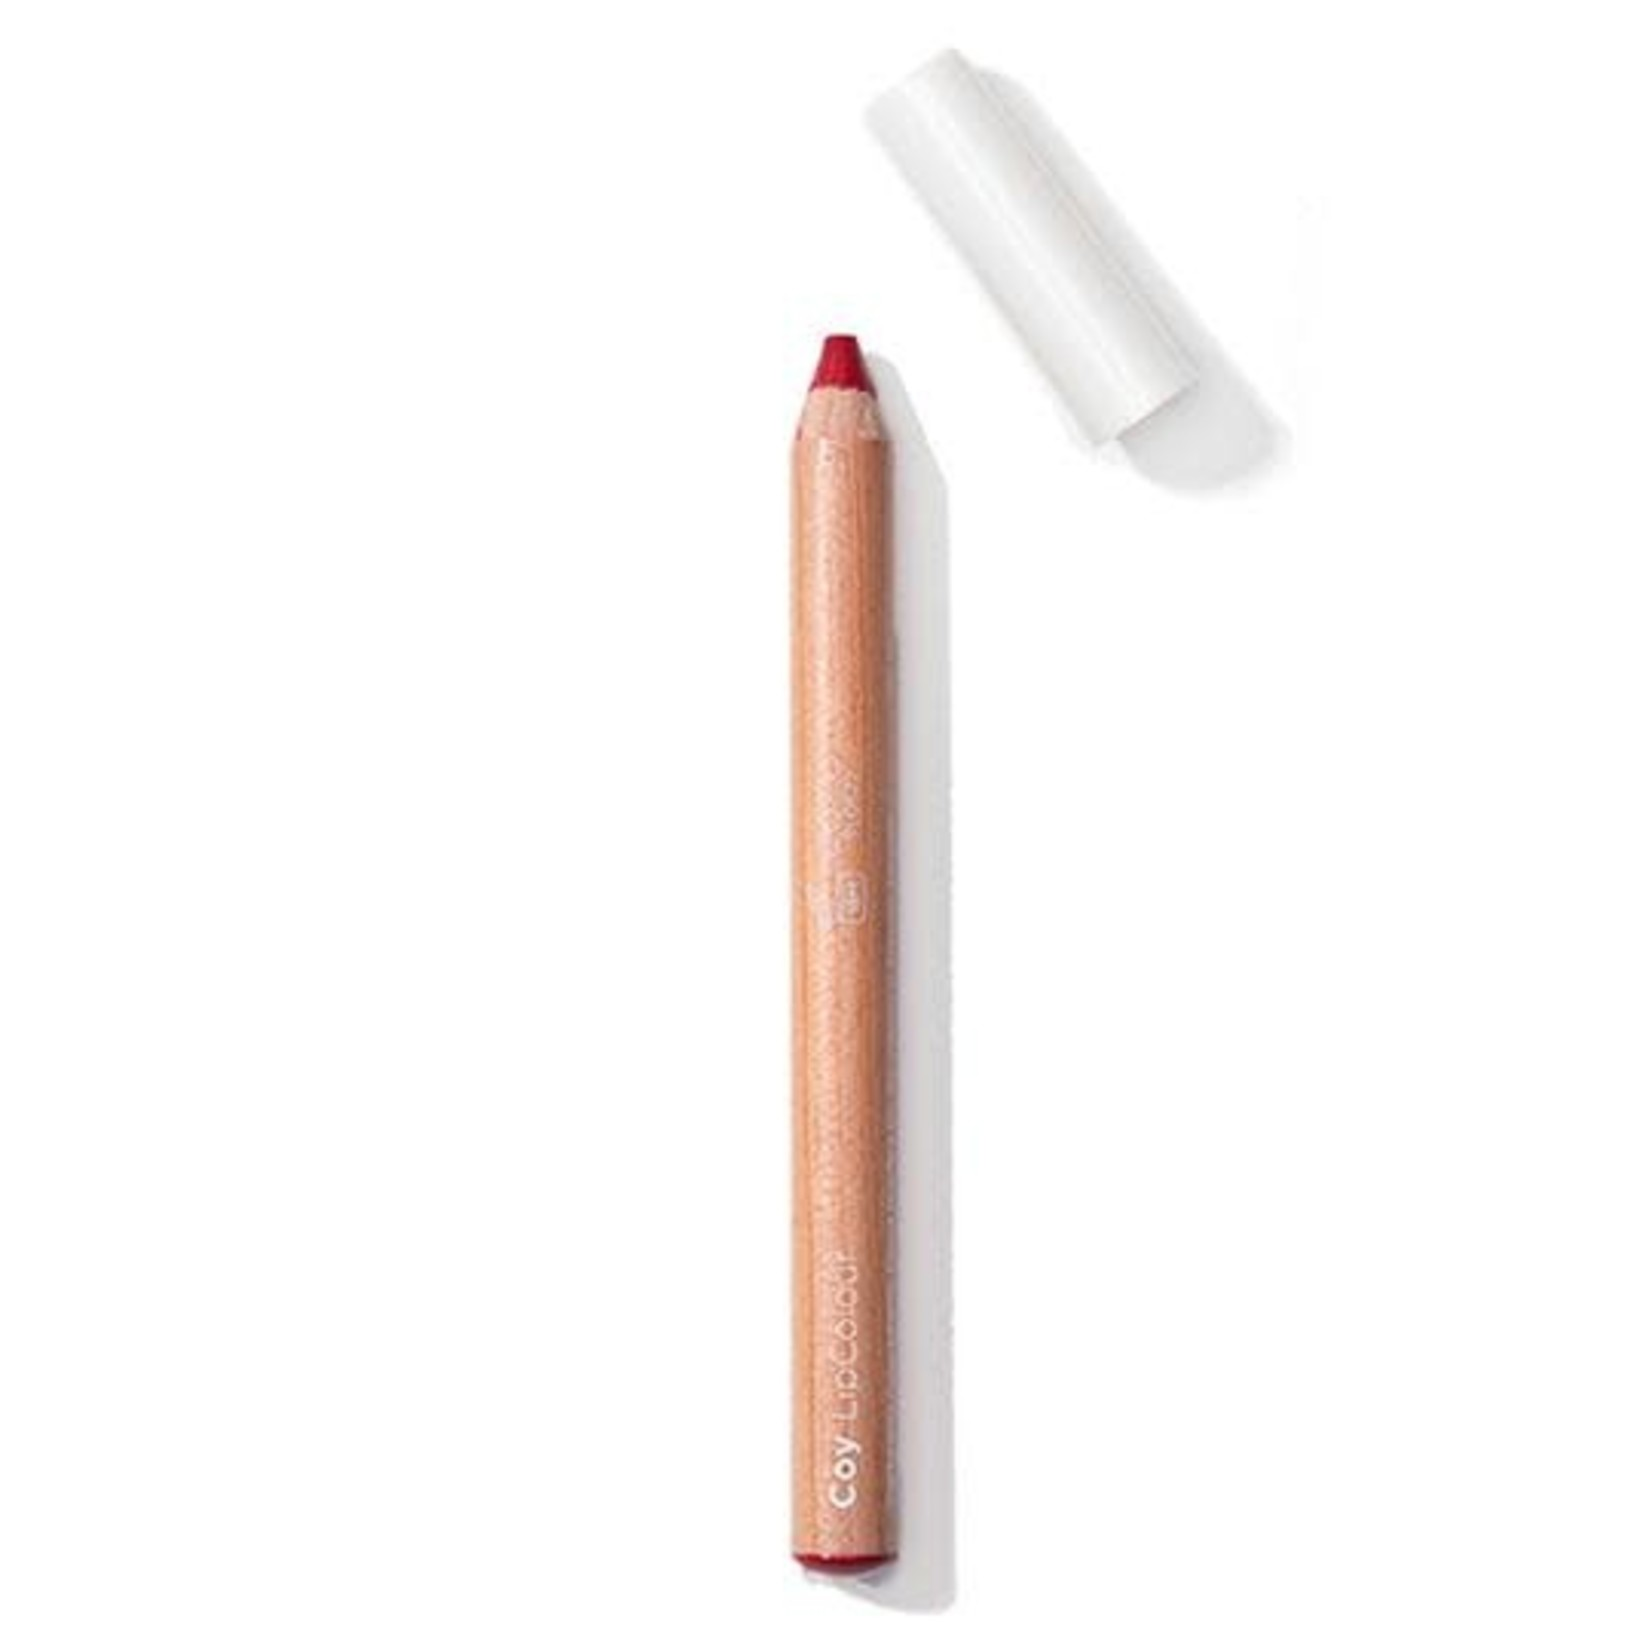 ELATE COSMETICS LIPCOLOUR PENCIL - COY